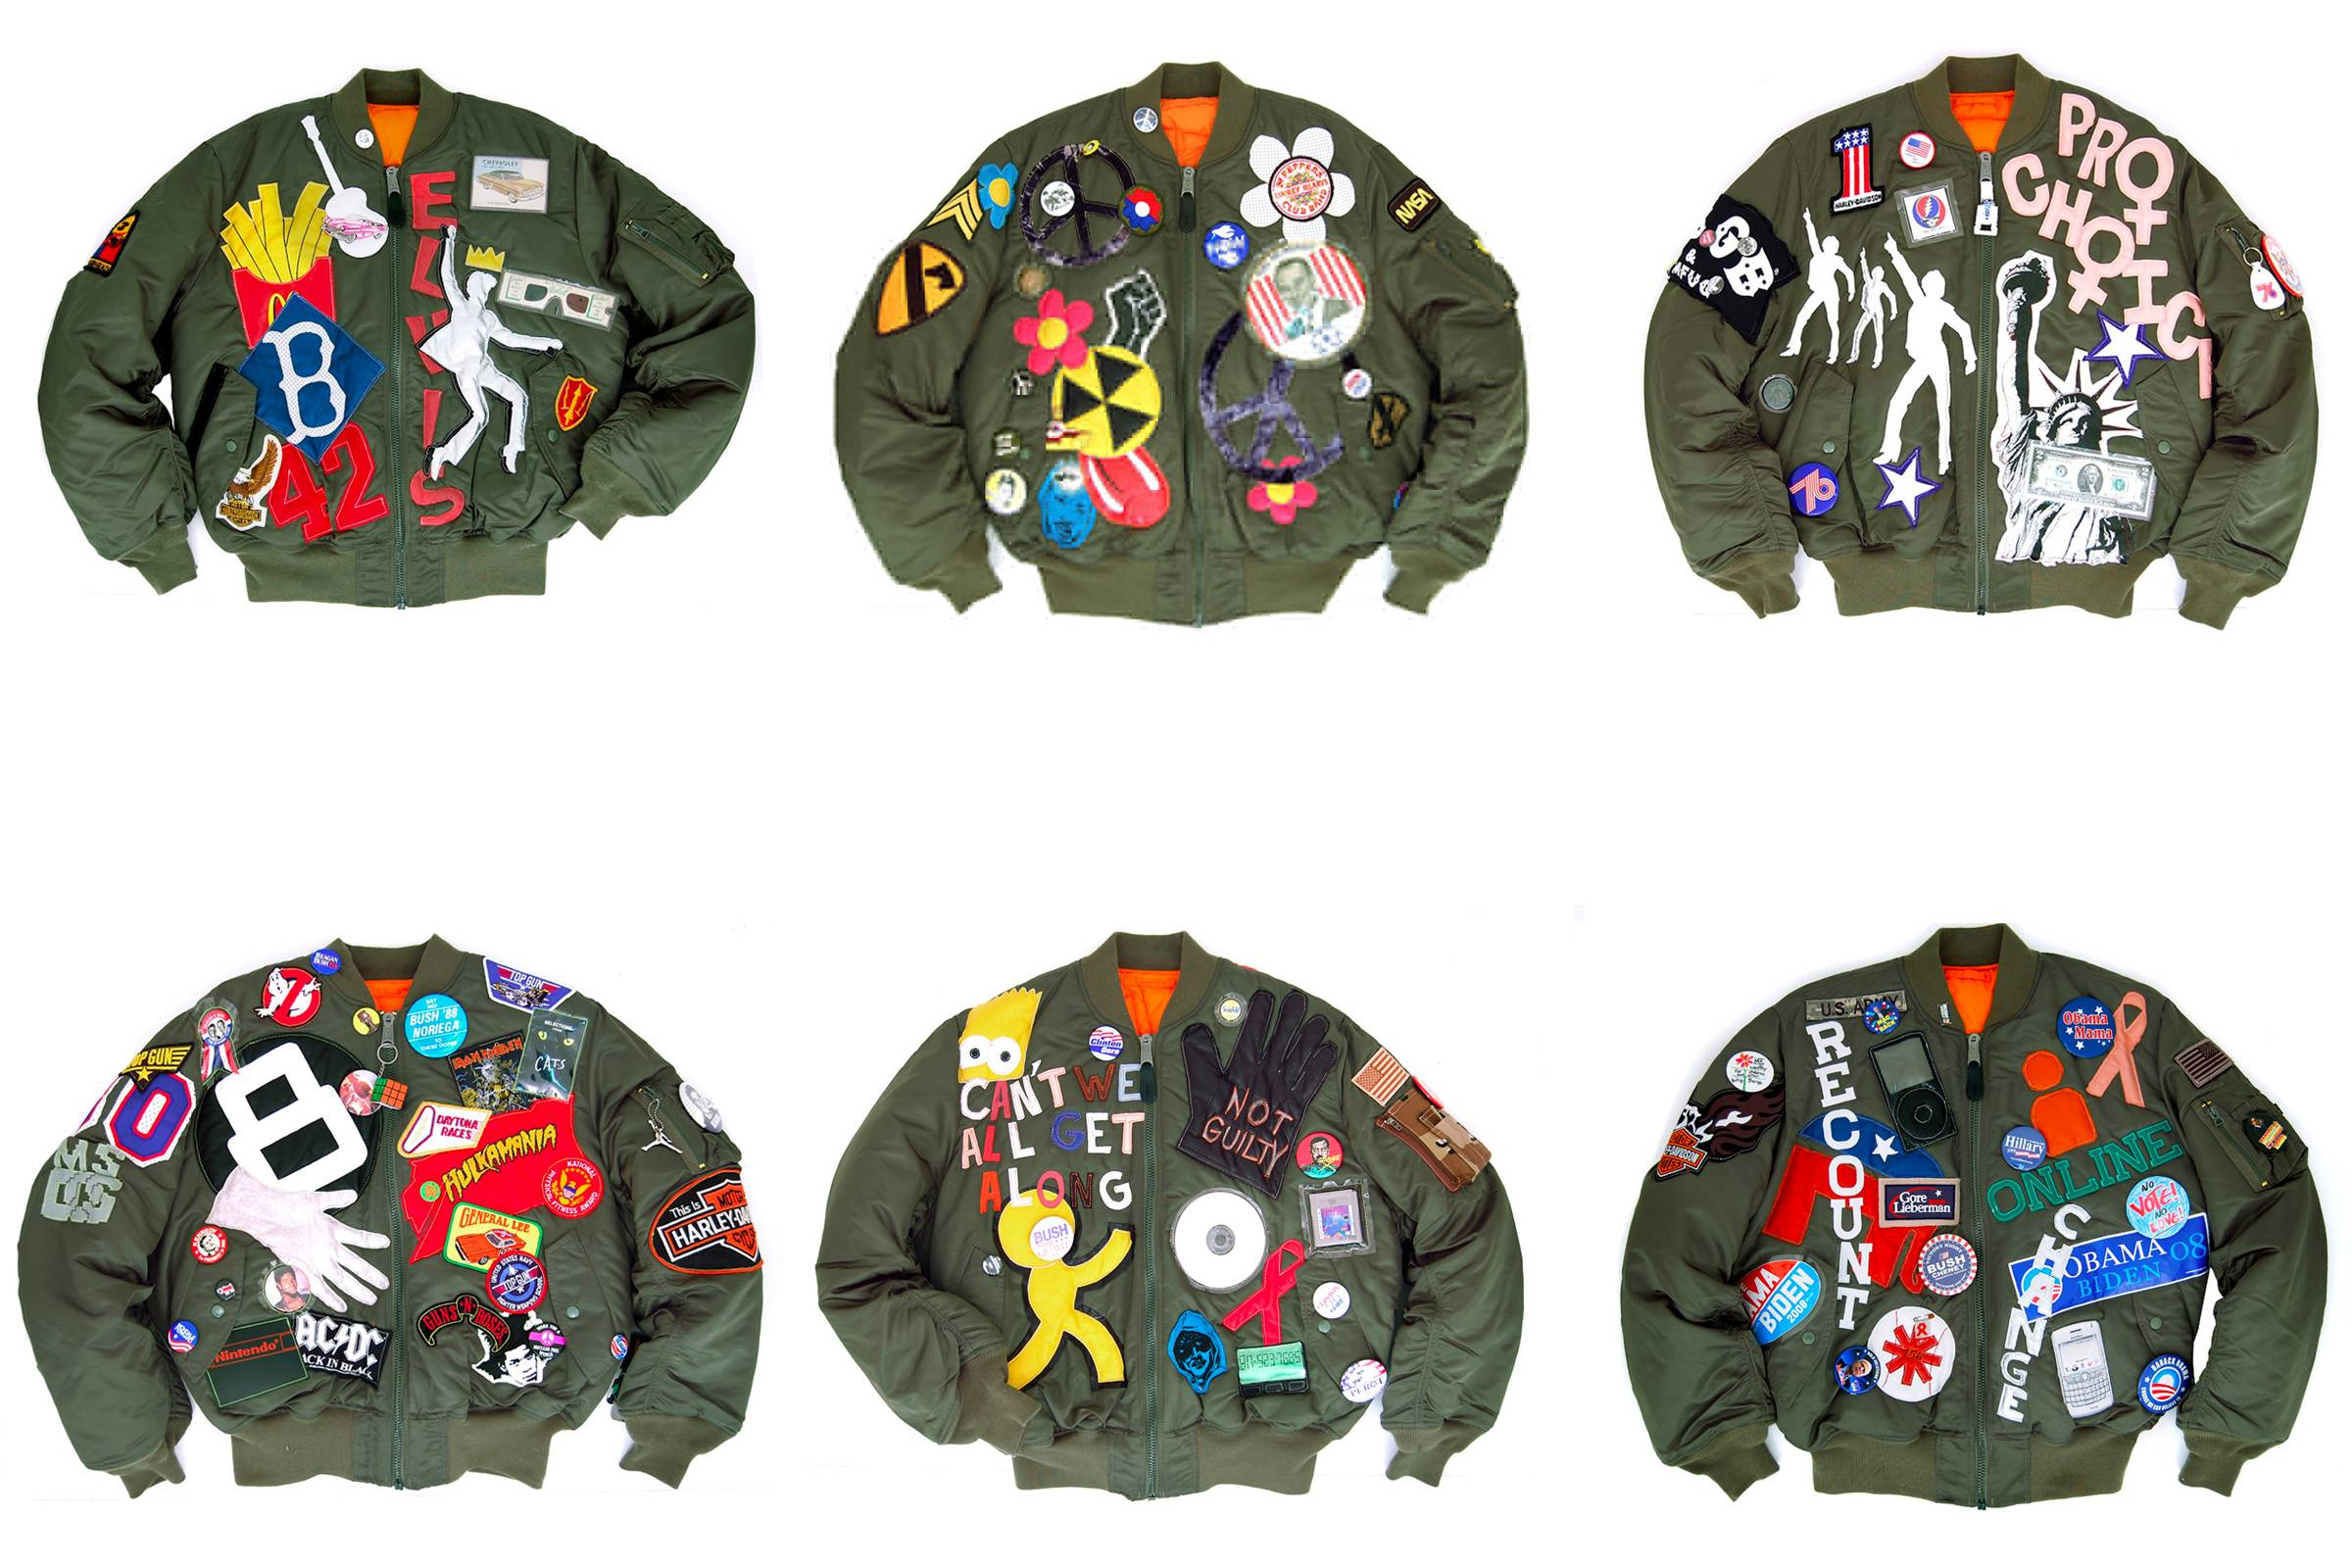 "Brian Wood's ""Alpha Industries: 6 Decades of History"" 50th anniversary jackets. Each jacket is customized to represent a particular decade: the 1950s (top left), the 1960s (top center), the 1970s (top right), the 1980s (bottom left), the 1990s (bottom center) and the 2000s."